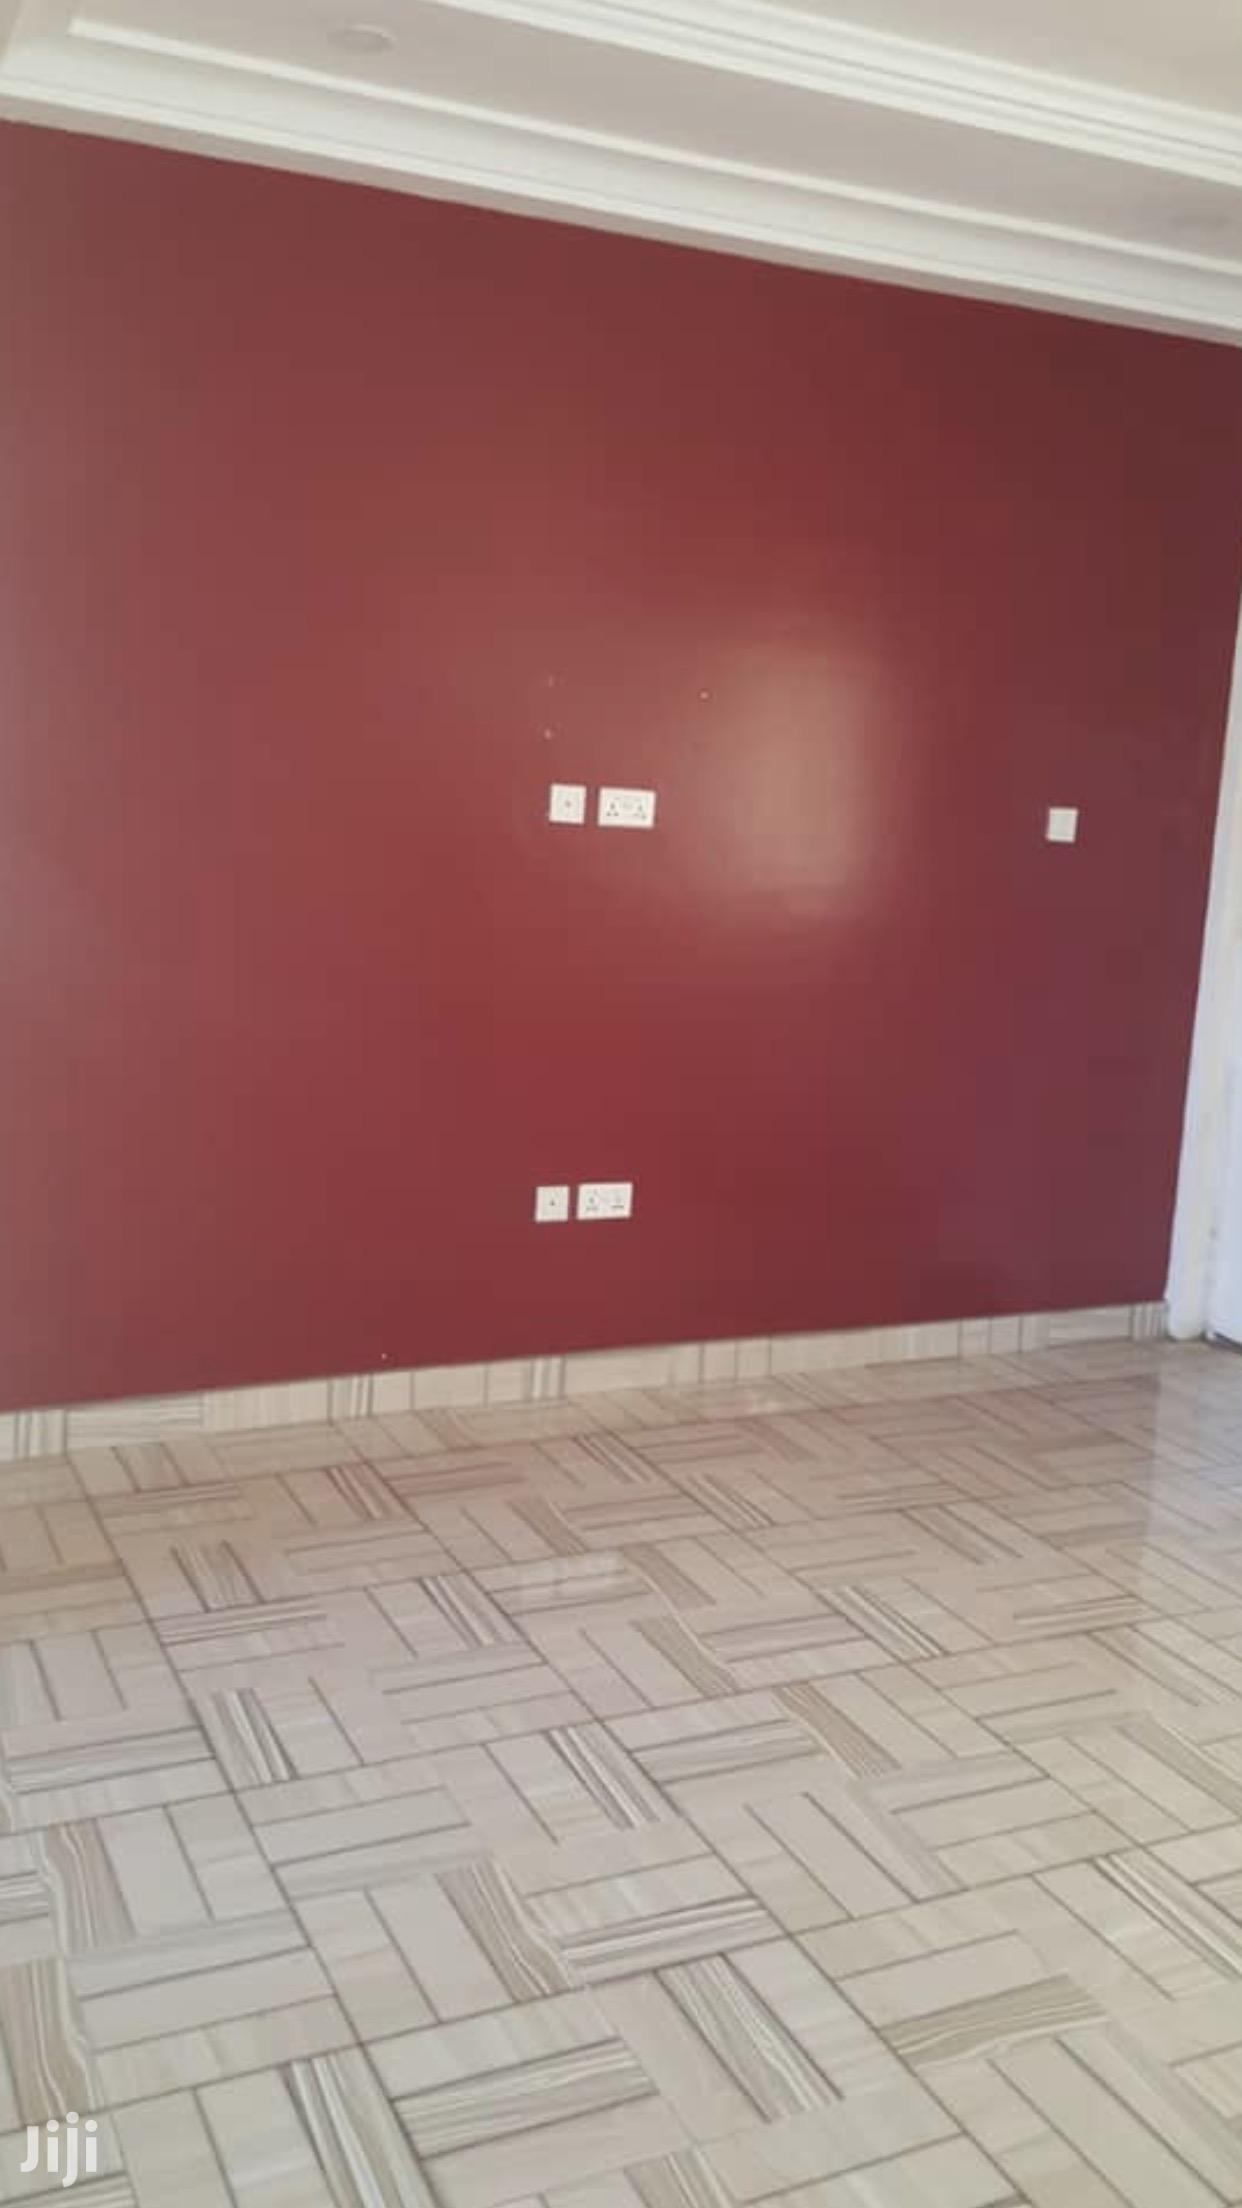 2 Bedrooms Self Contain Awoshie Oyenasi | Houses & Apartments For Rent for sale in Ga East Municipal, Greater Accra, Ghana